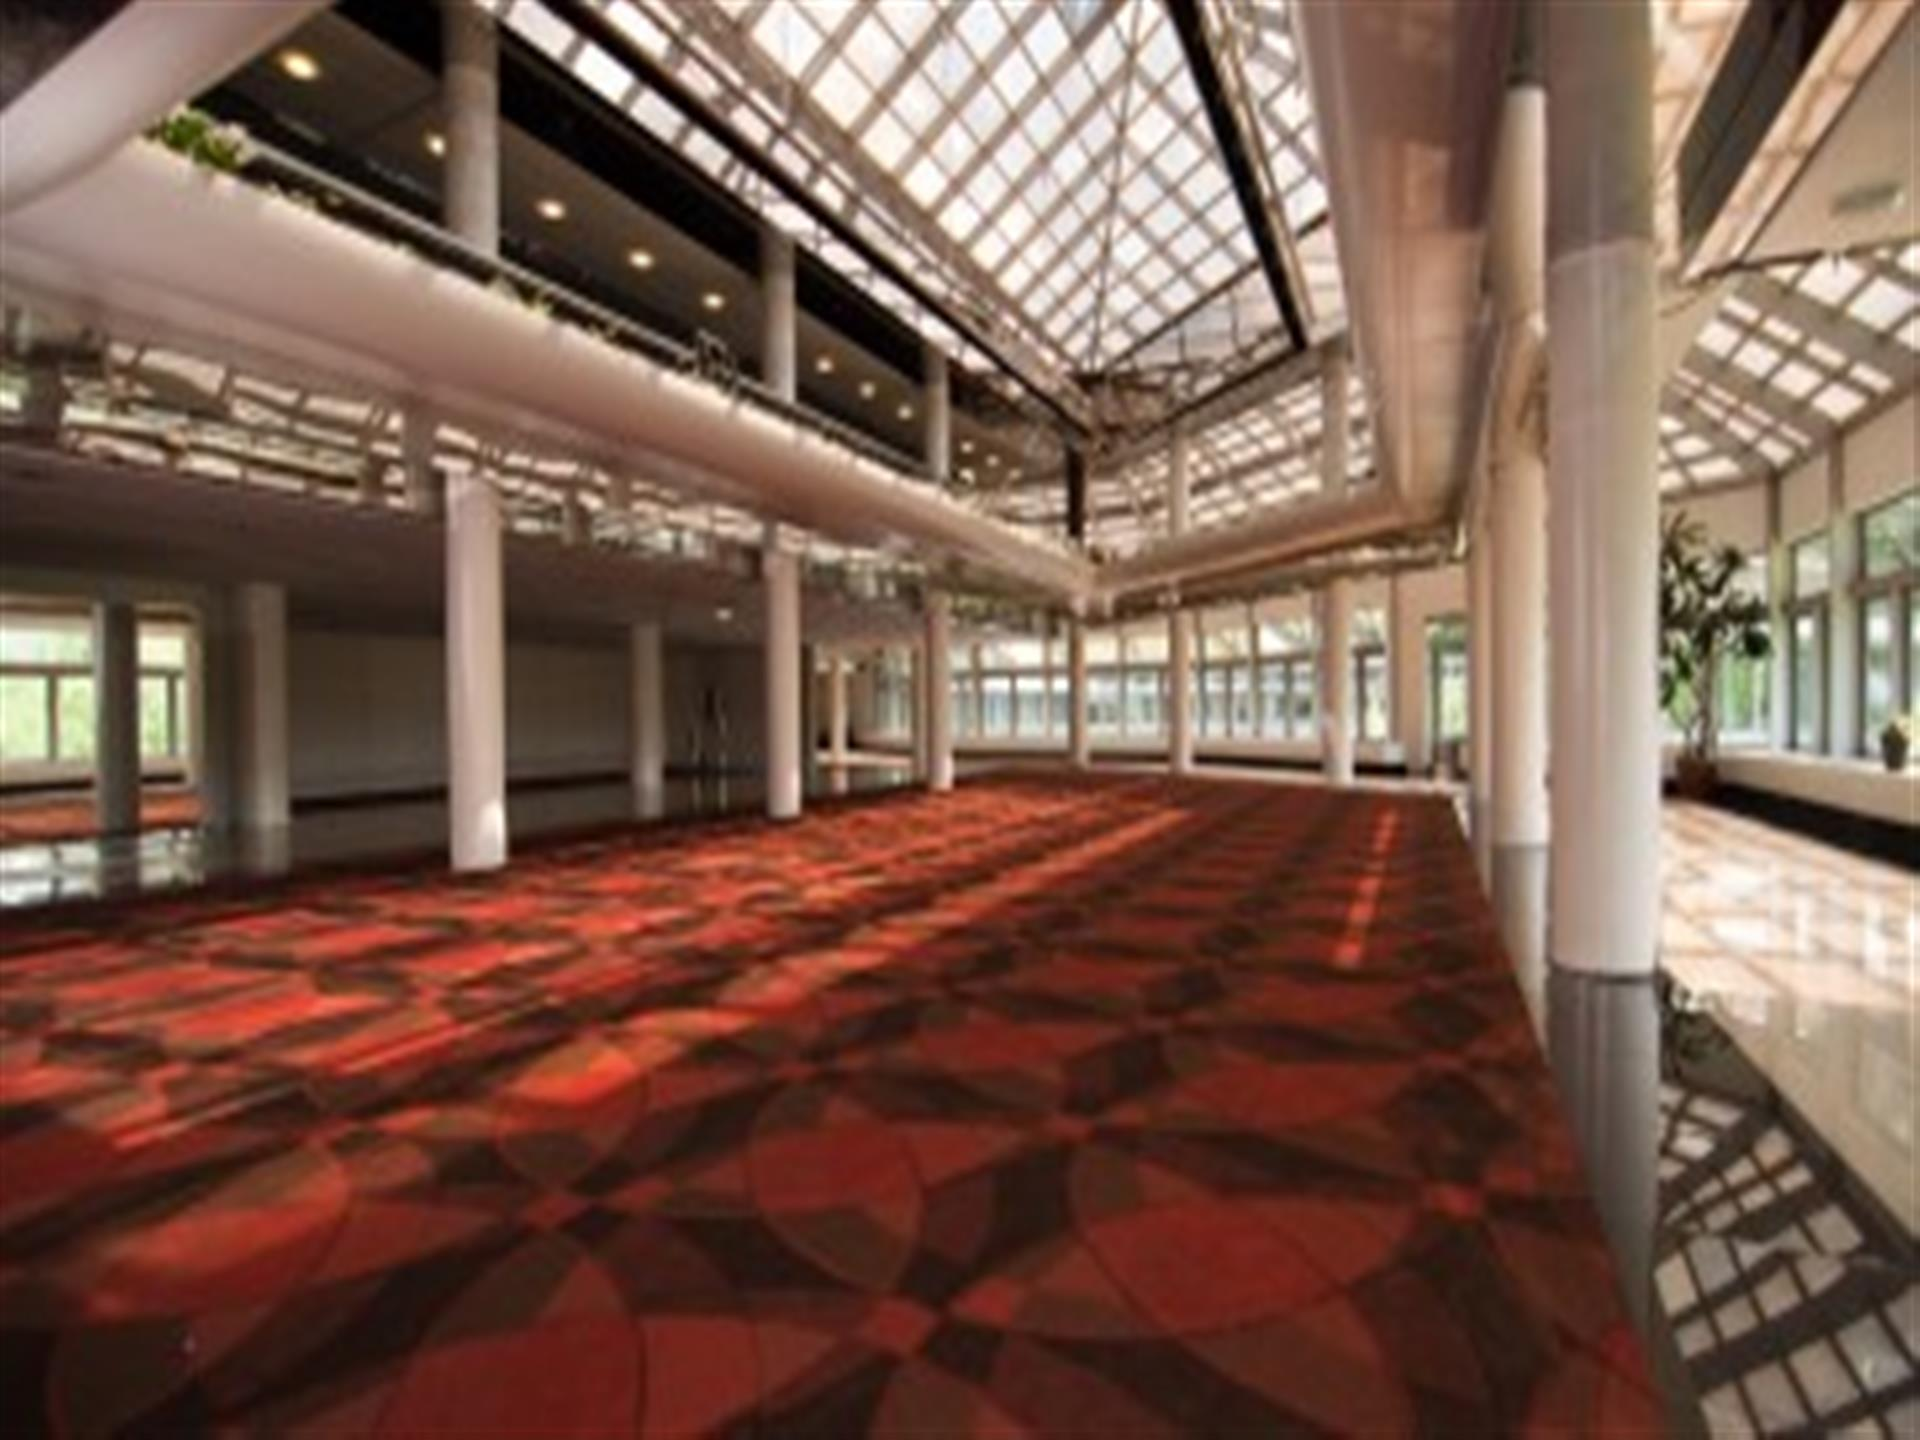 Corridor with red carpet and high celing